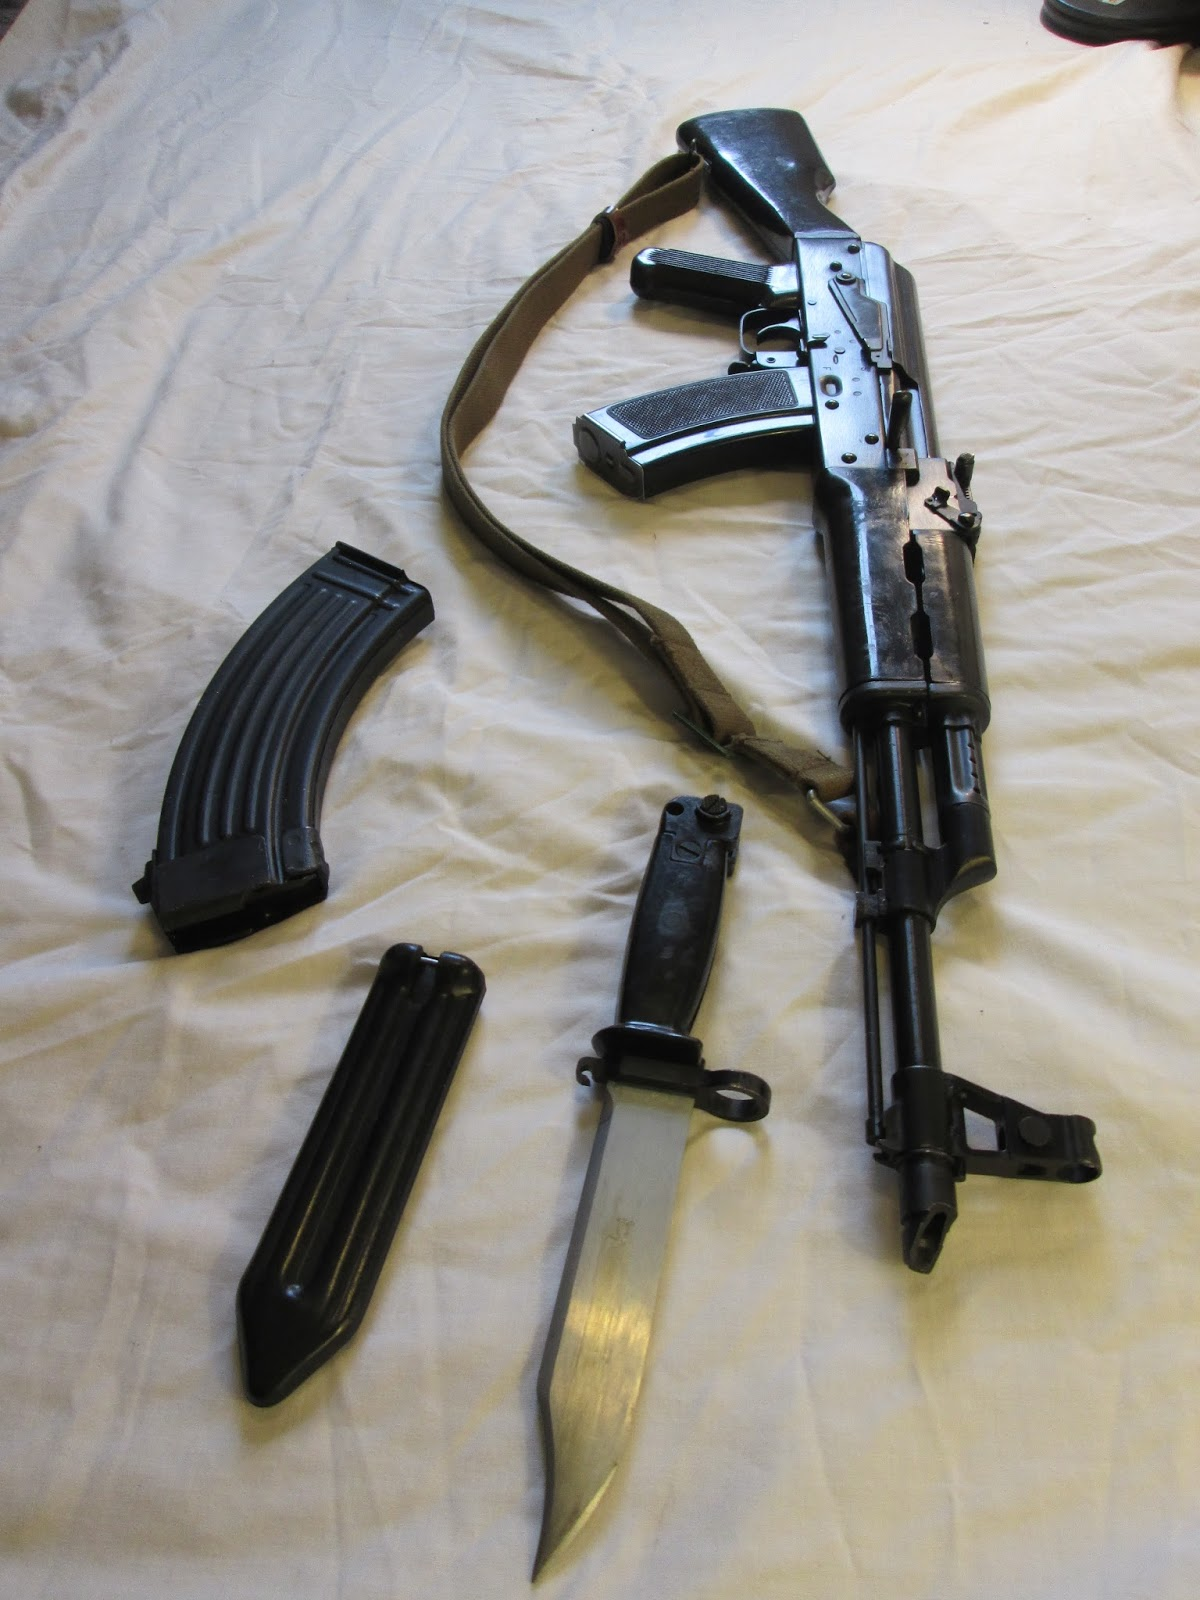 The Chinese AK-47 Blog: Chinese Bakelite AK-47 Furniture